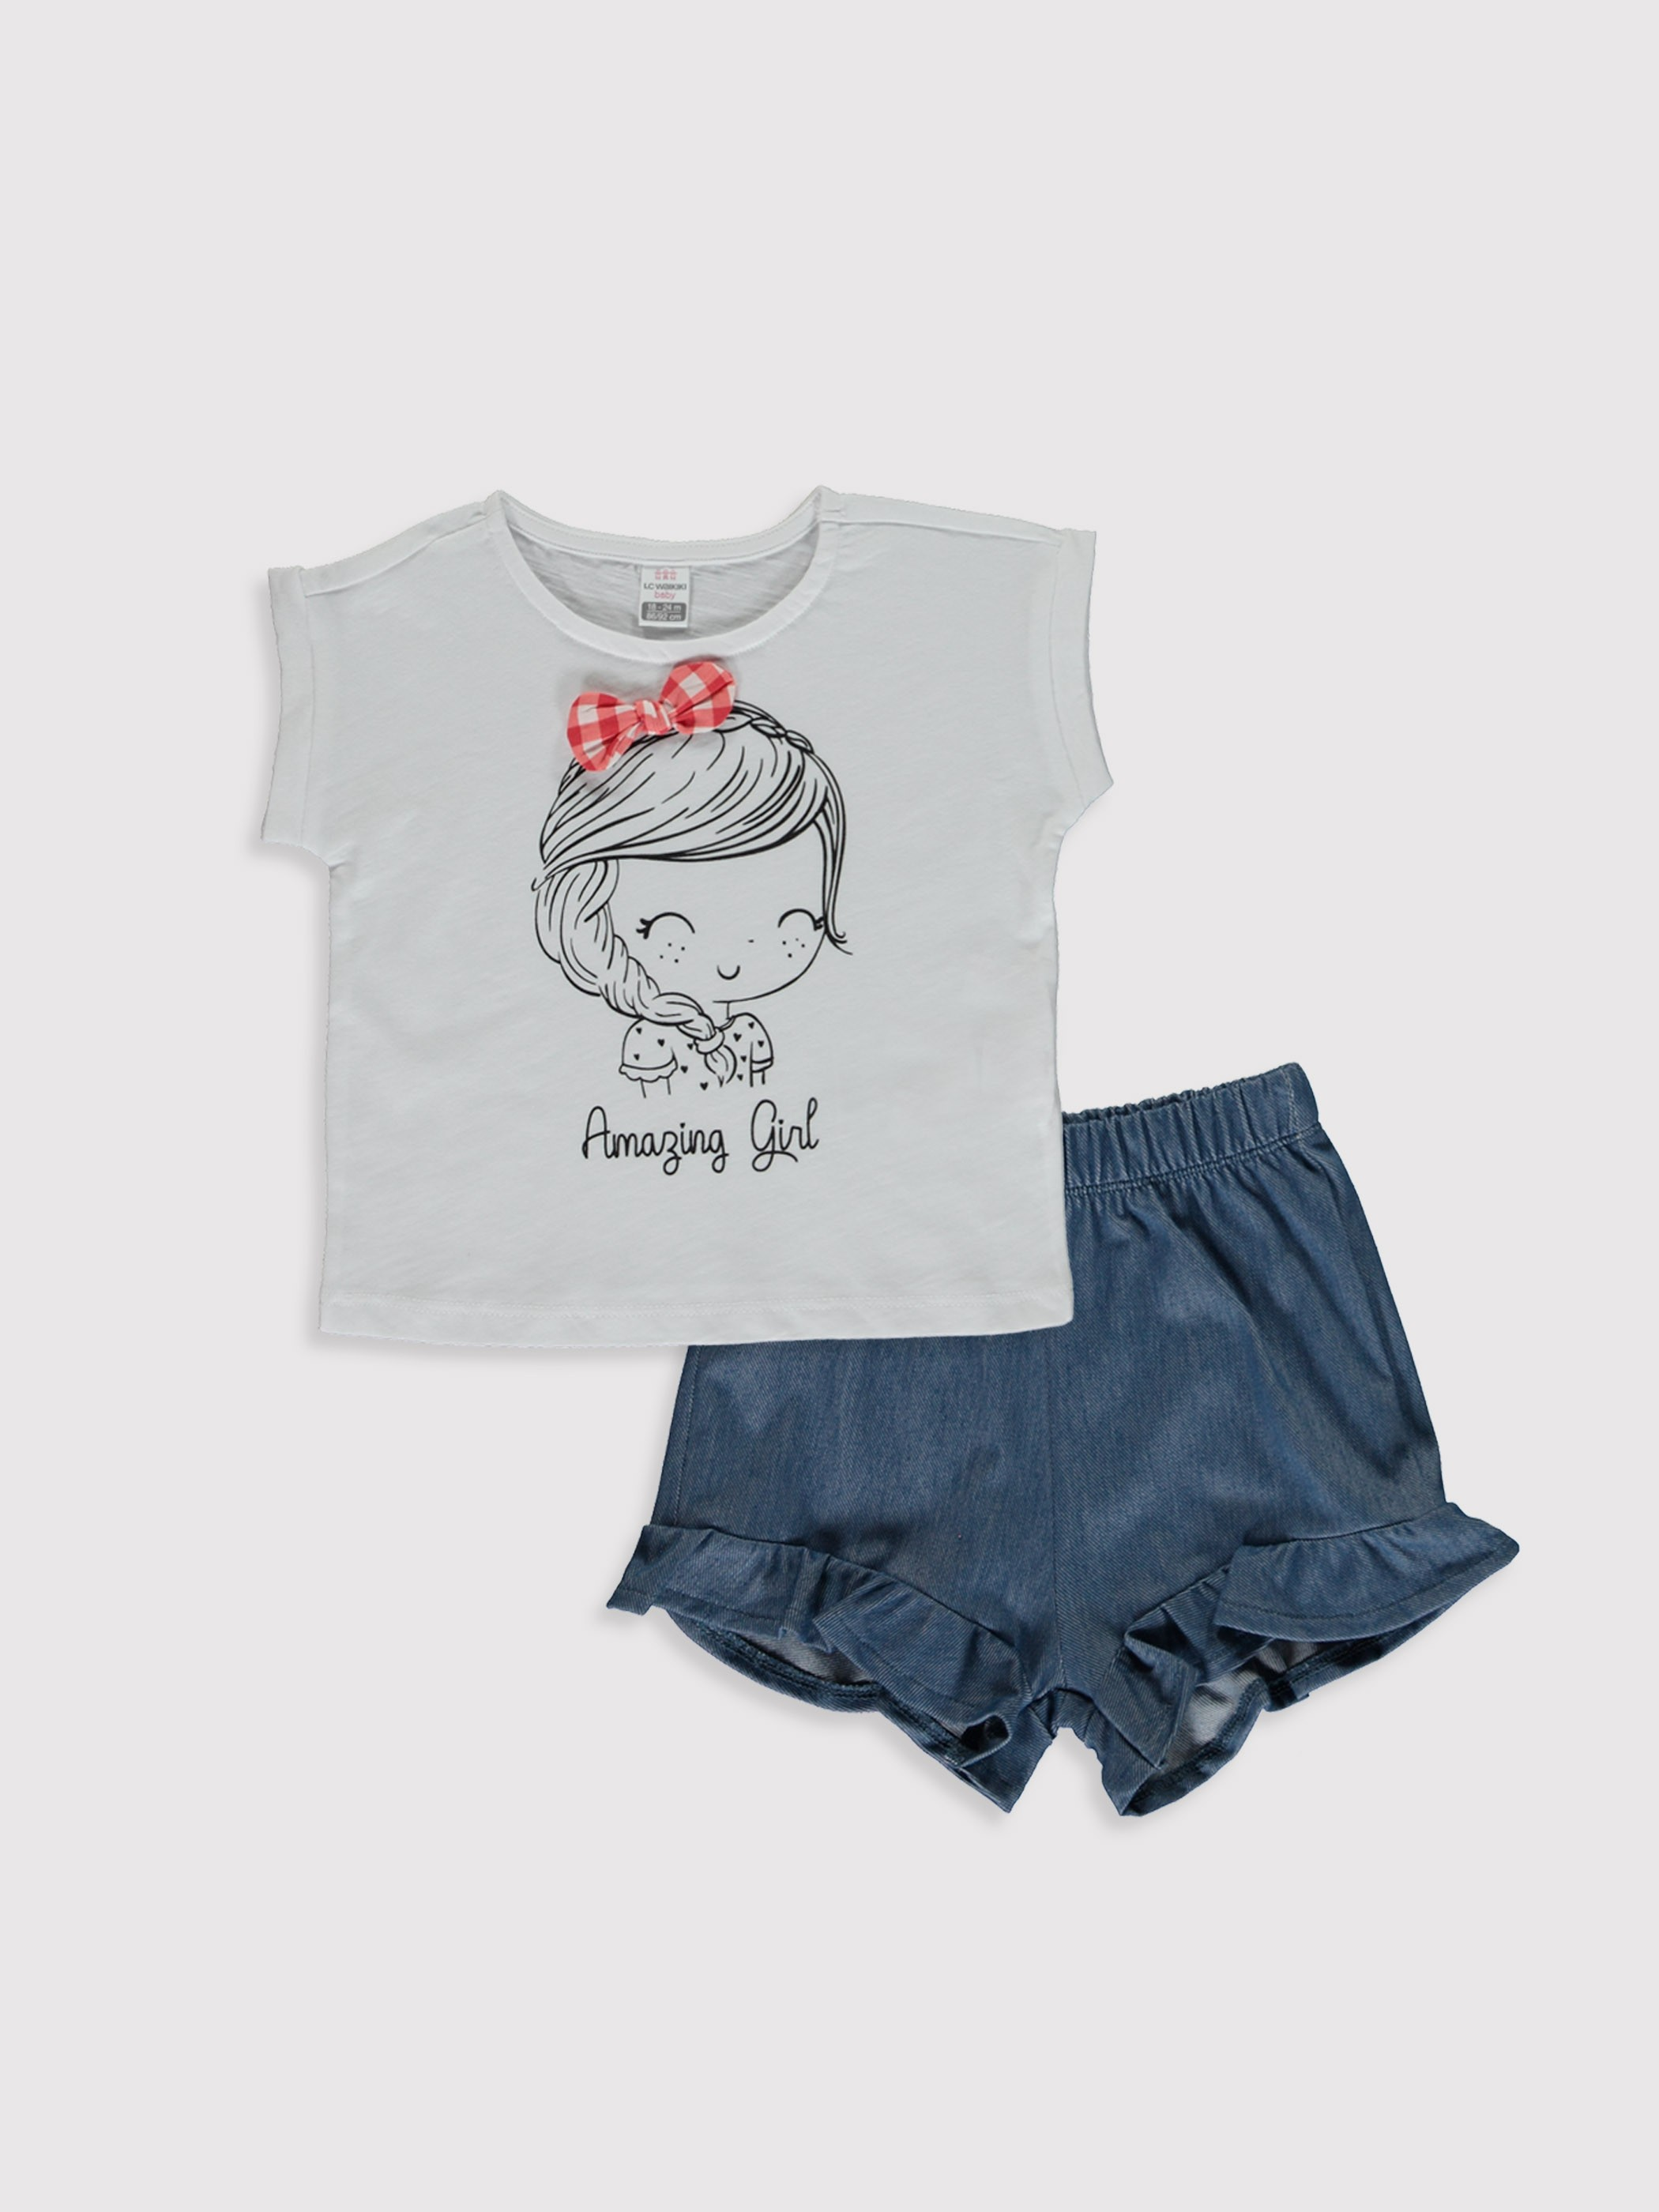 WHITE - Baby Girl's Printed T-Shirt and Shorts - 0SD312Z1